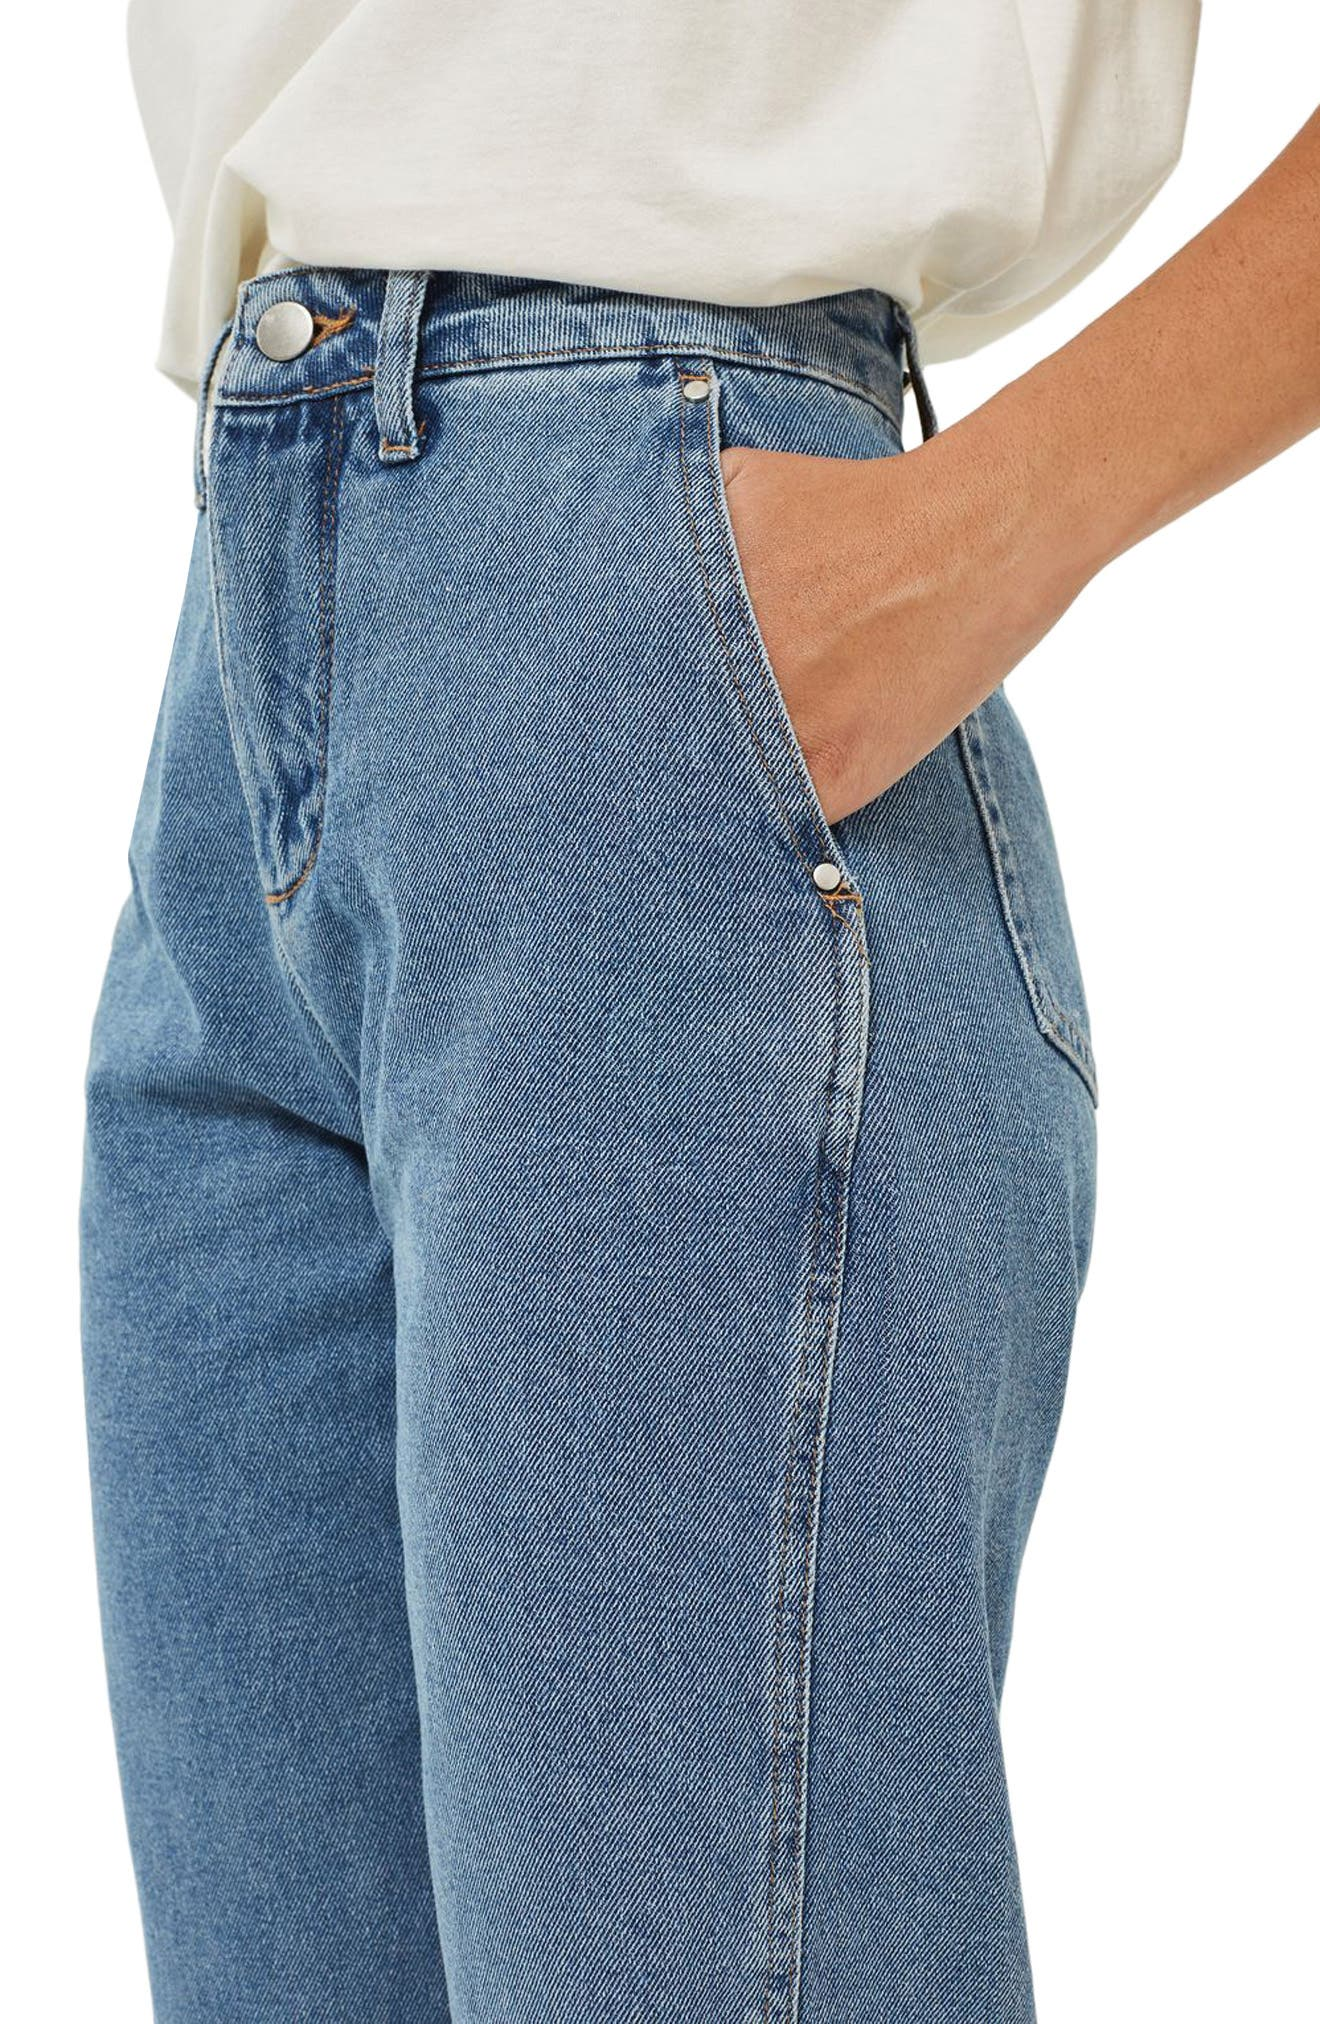 Displaced Seam Boyfriend Jeans,                             Alternate thumbnail 4, color,                             400